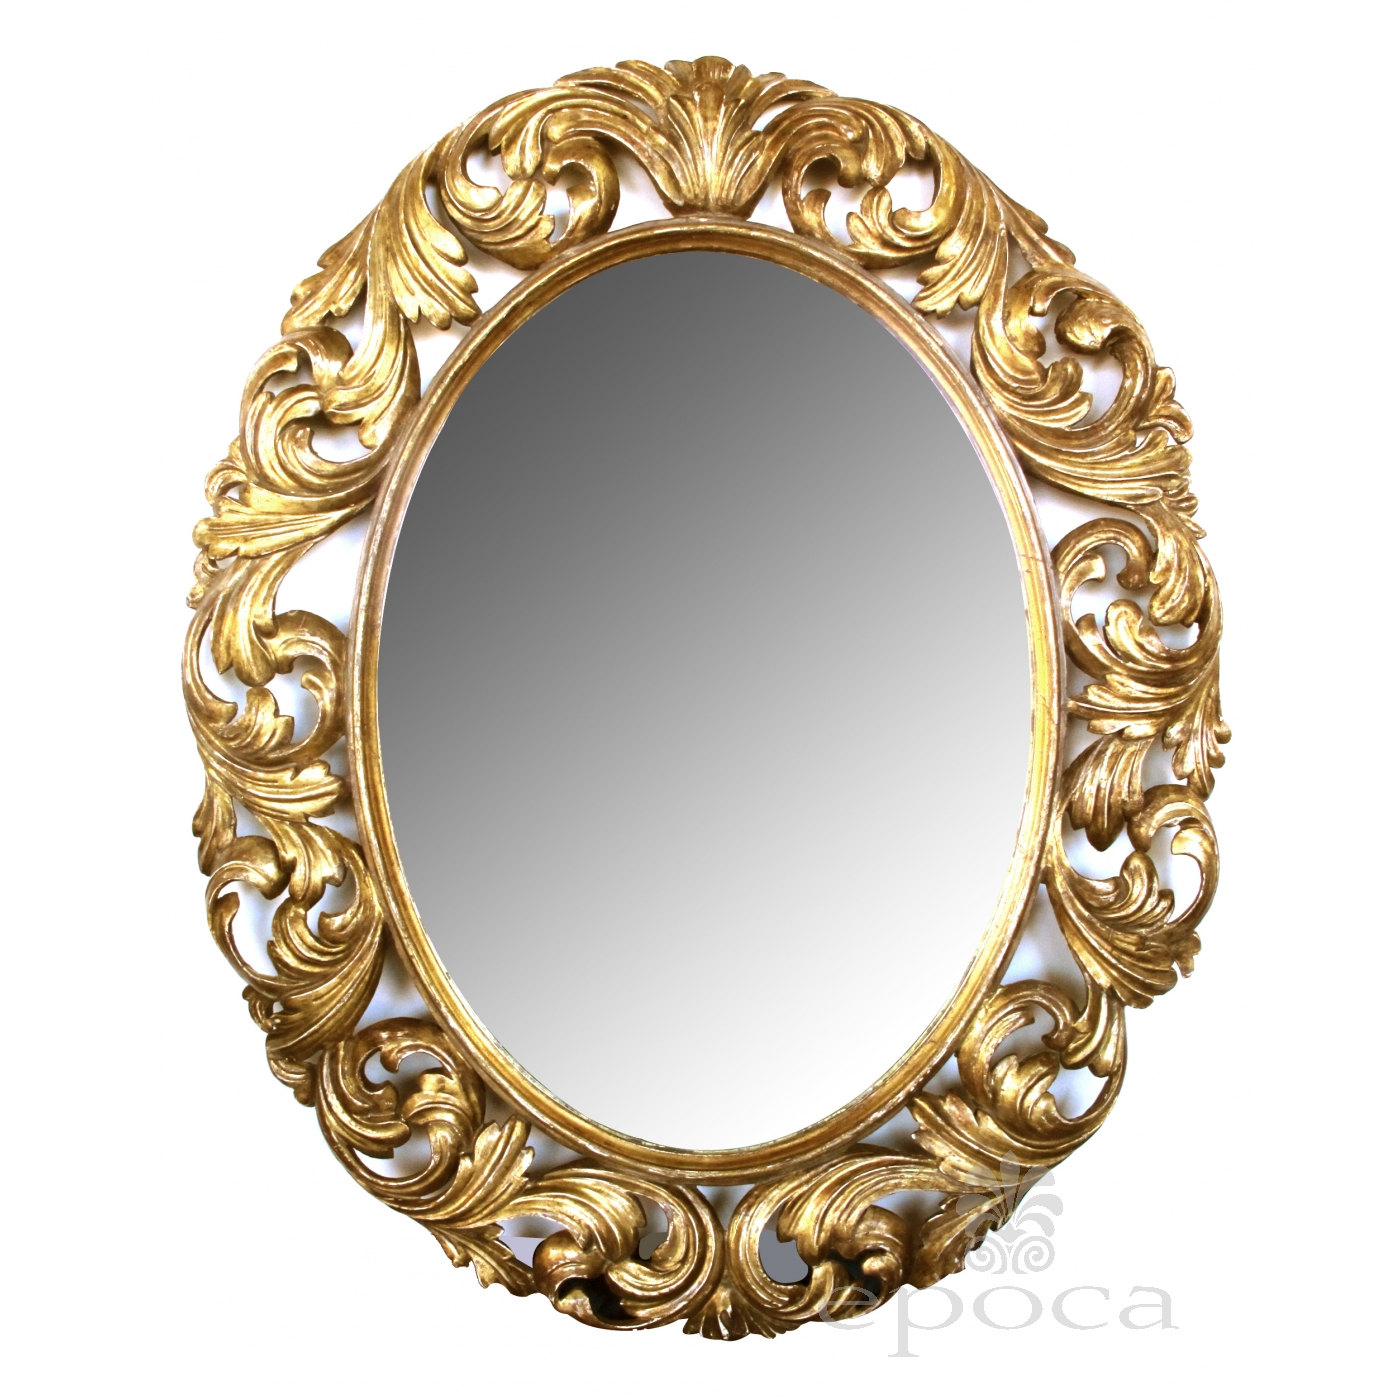 A Well Carved Italian Baroque Style Oval Gilt Wood Mirror